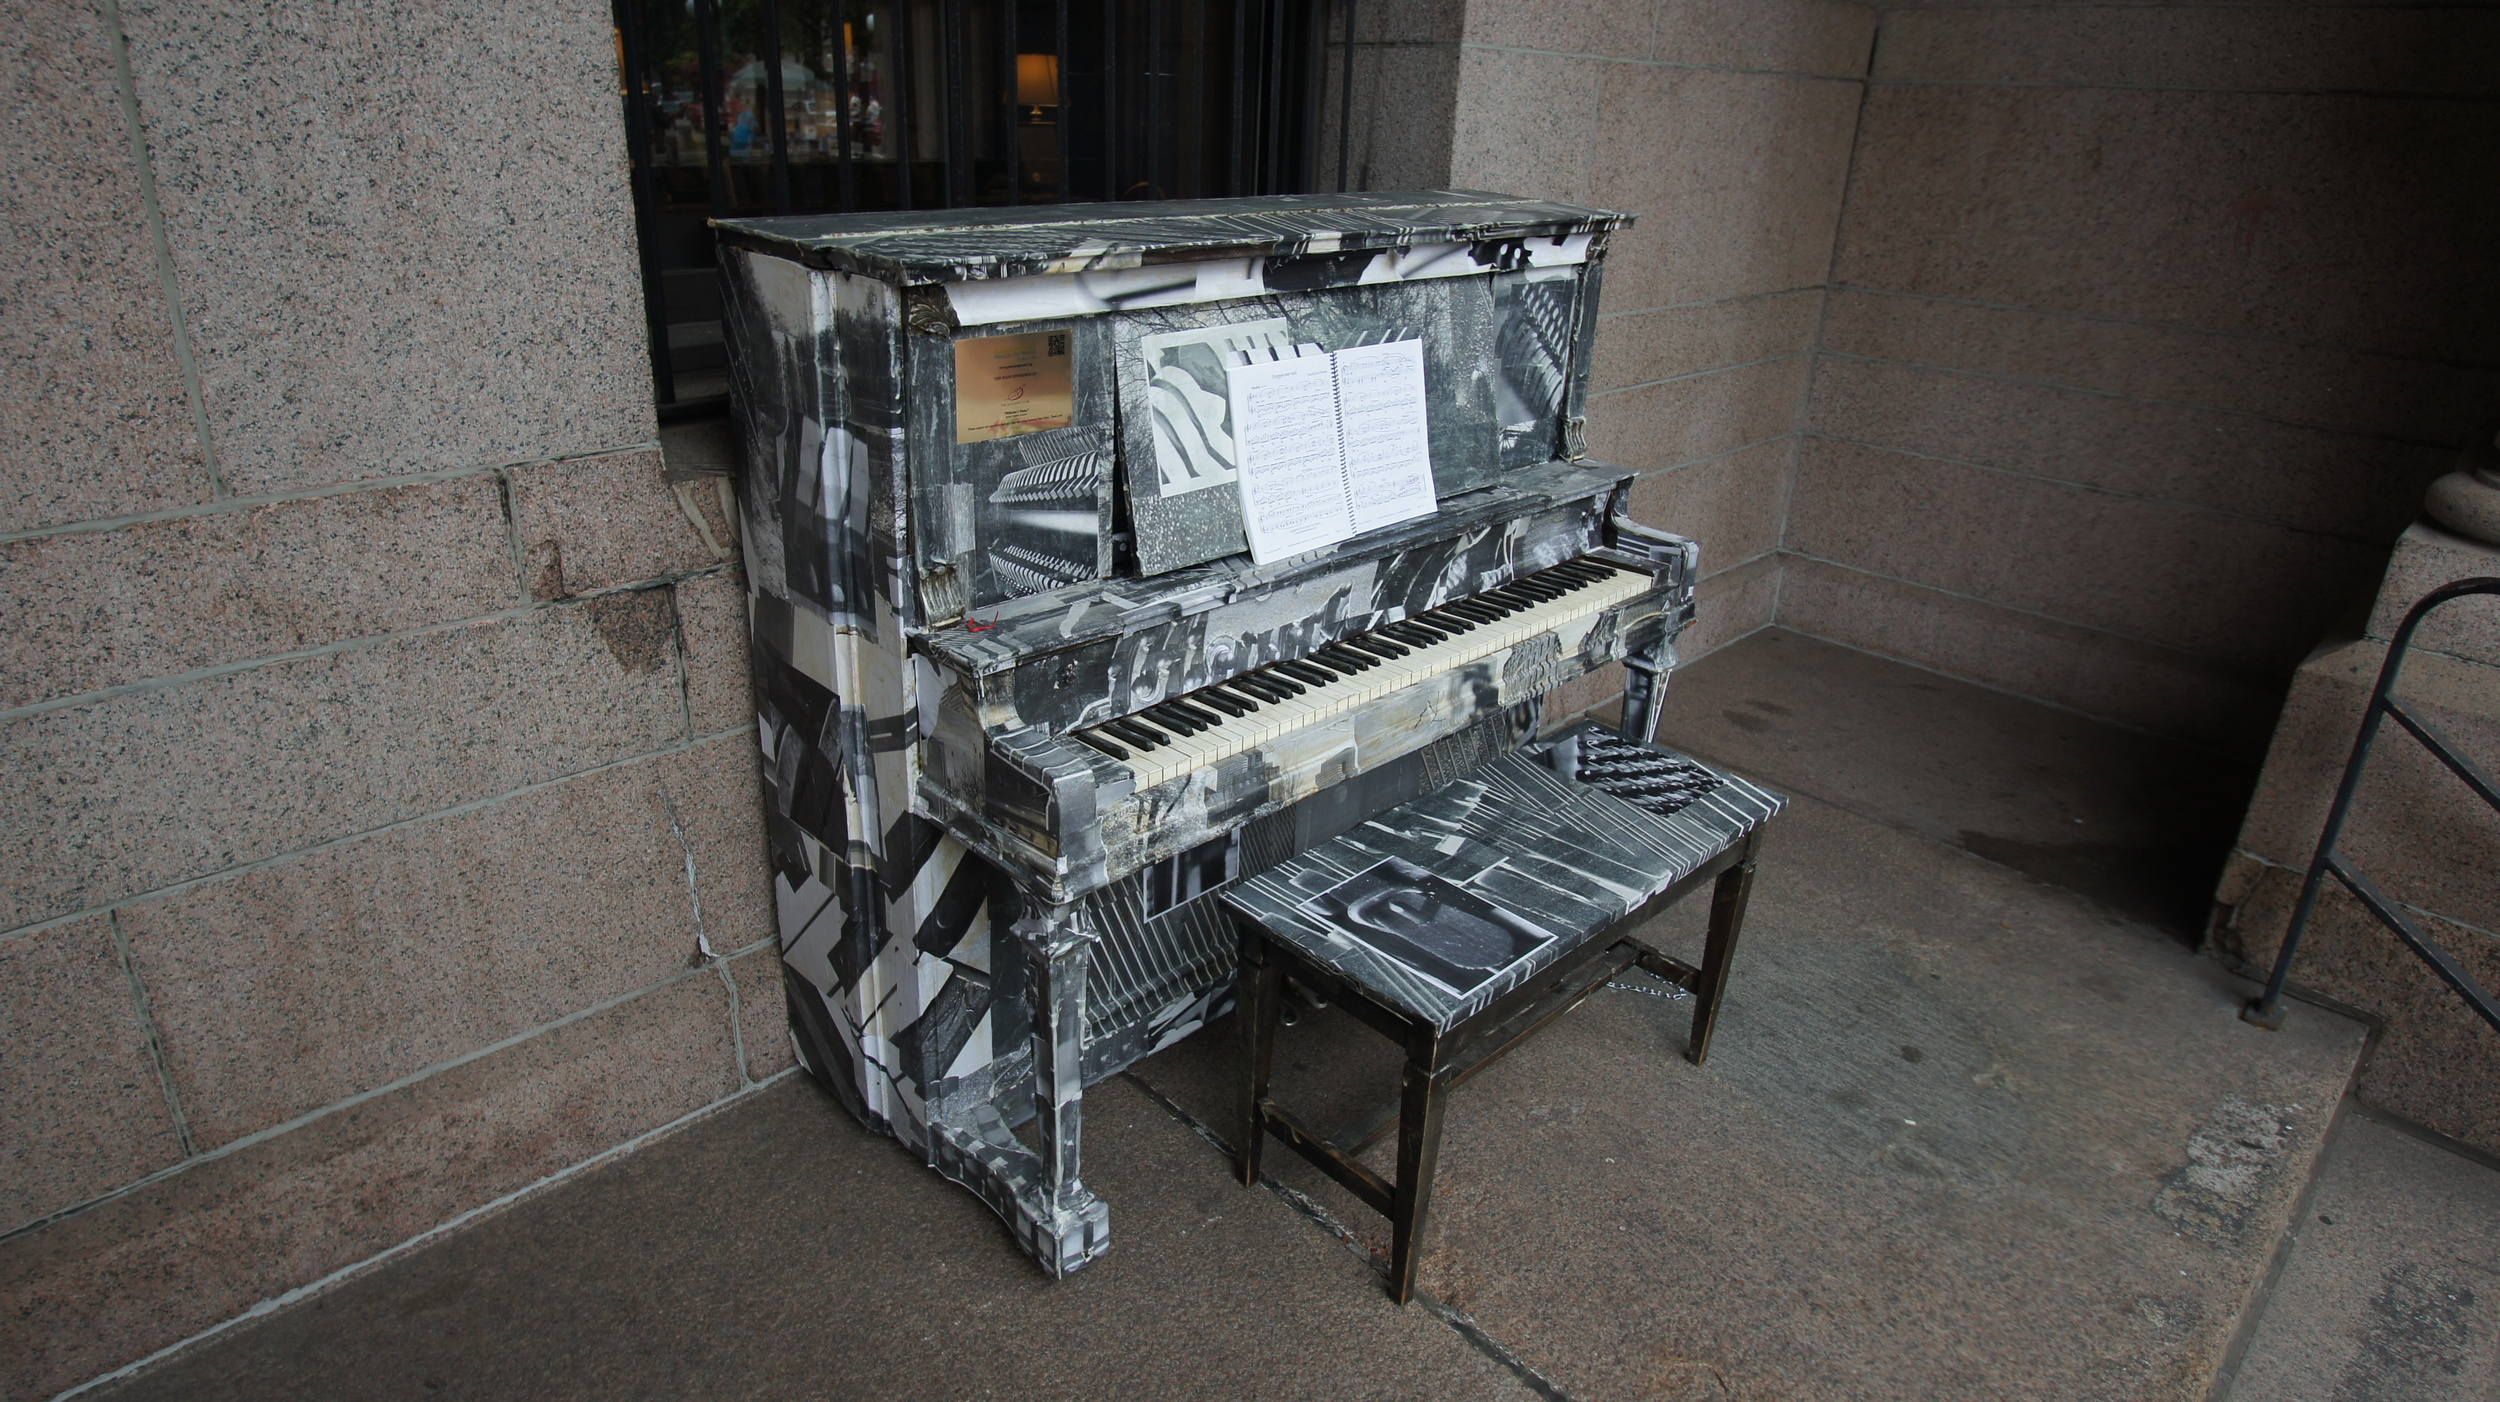 pianos for sale near me , piano shop near me , second hand pianos for sale